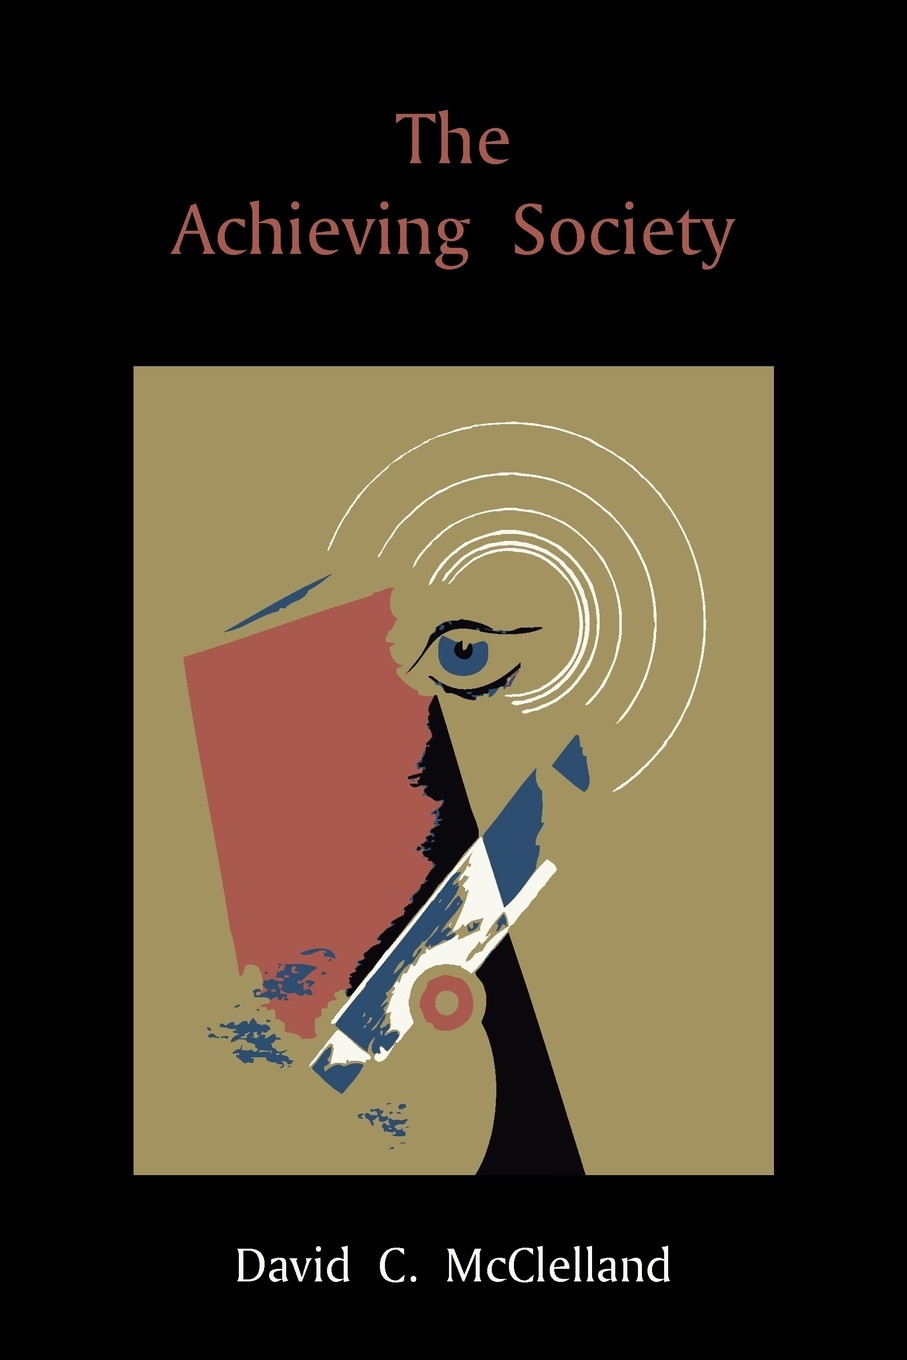 David C. McClelland The Achieving Society motivation and action